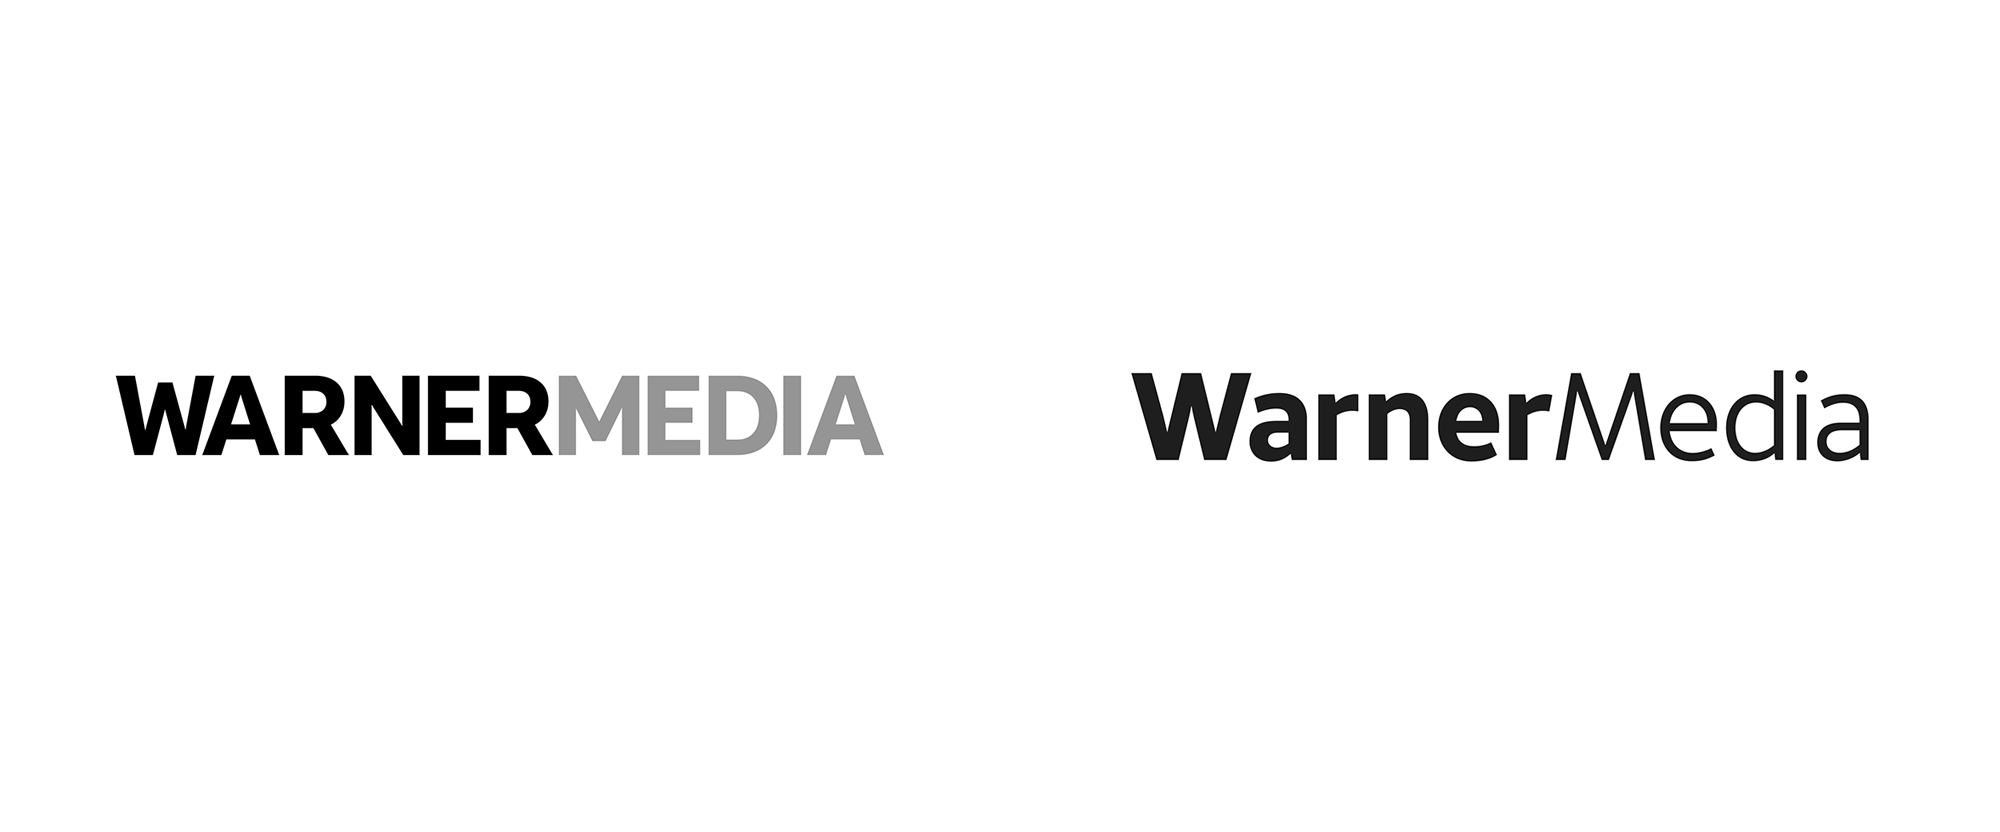 New Logo and Identity for WarnerMedia by Wolff Olins